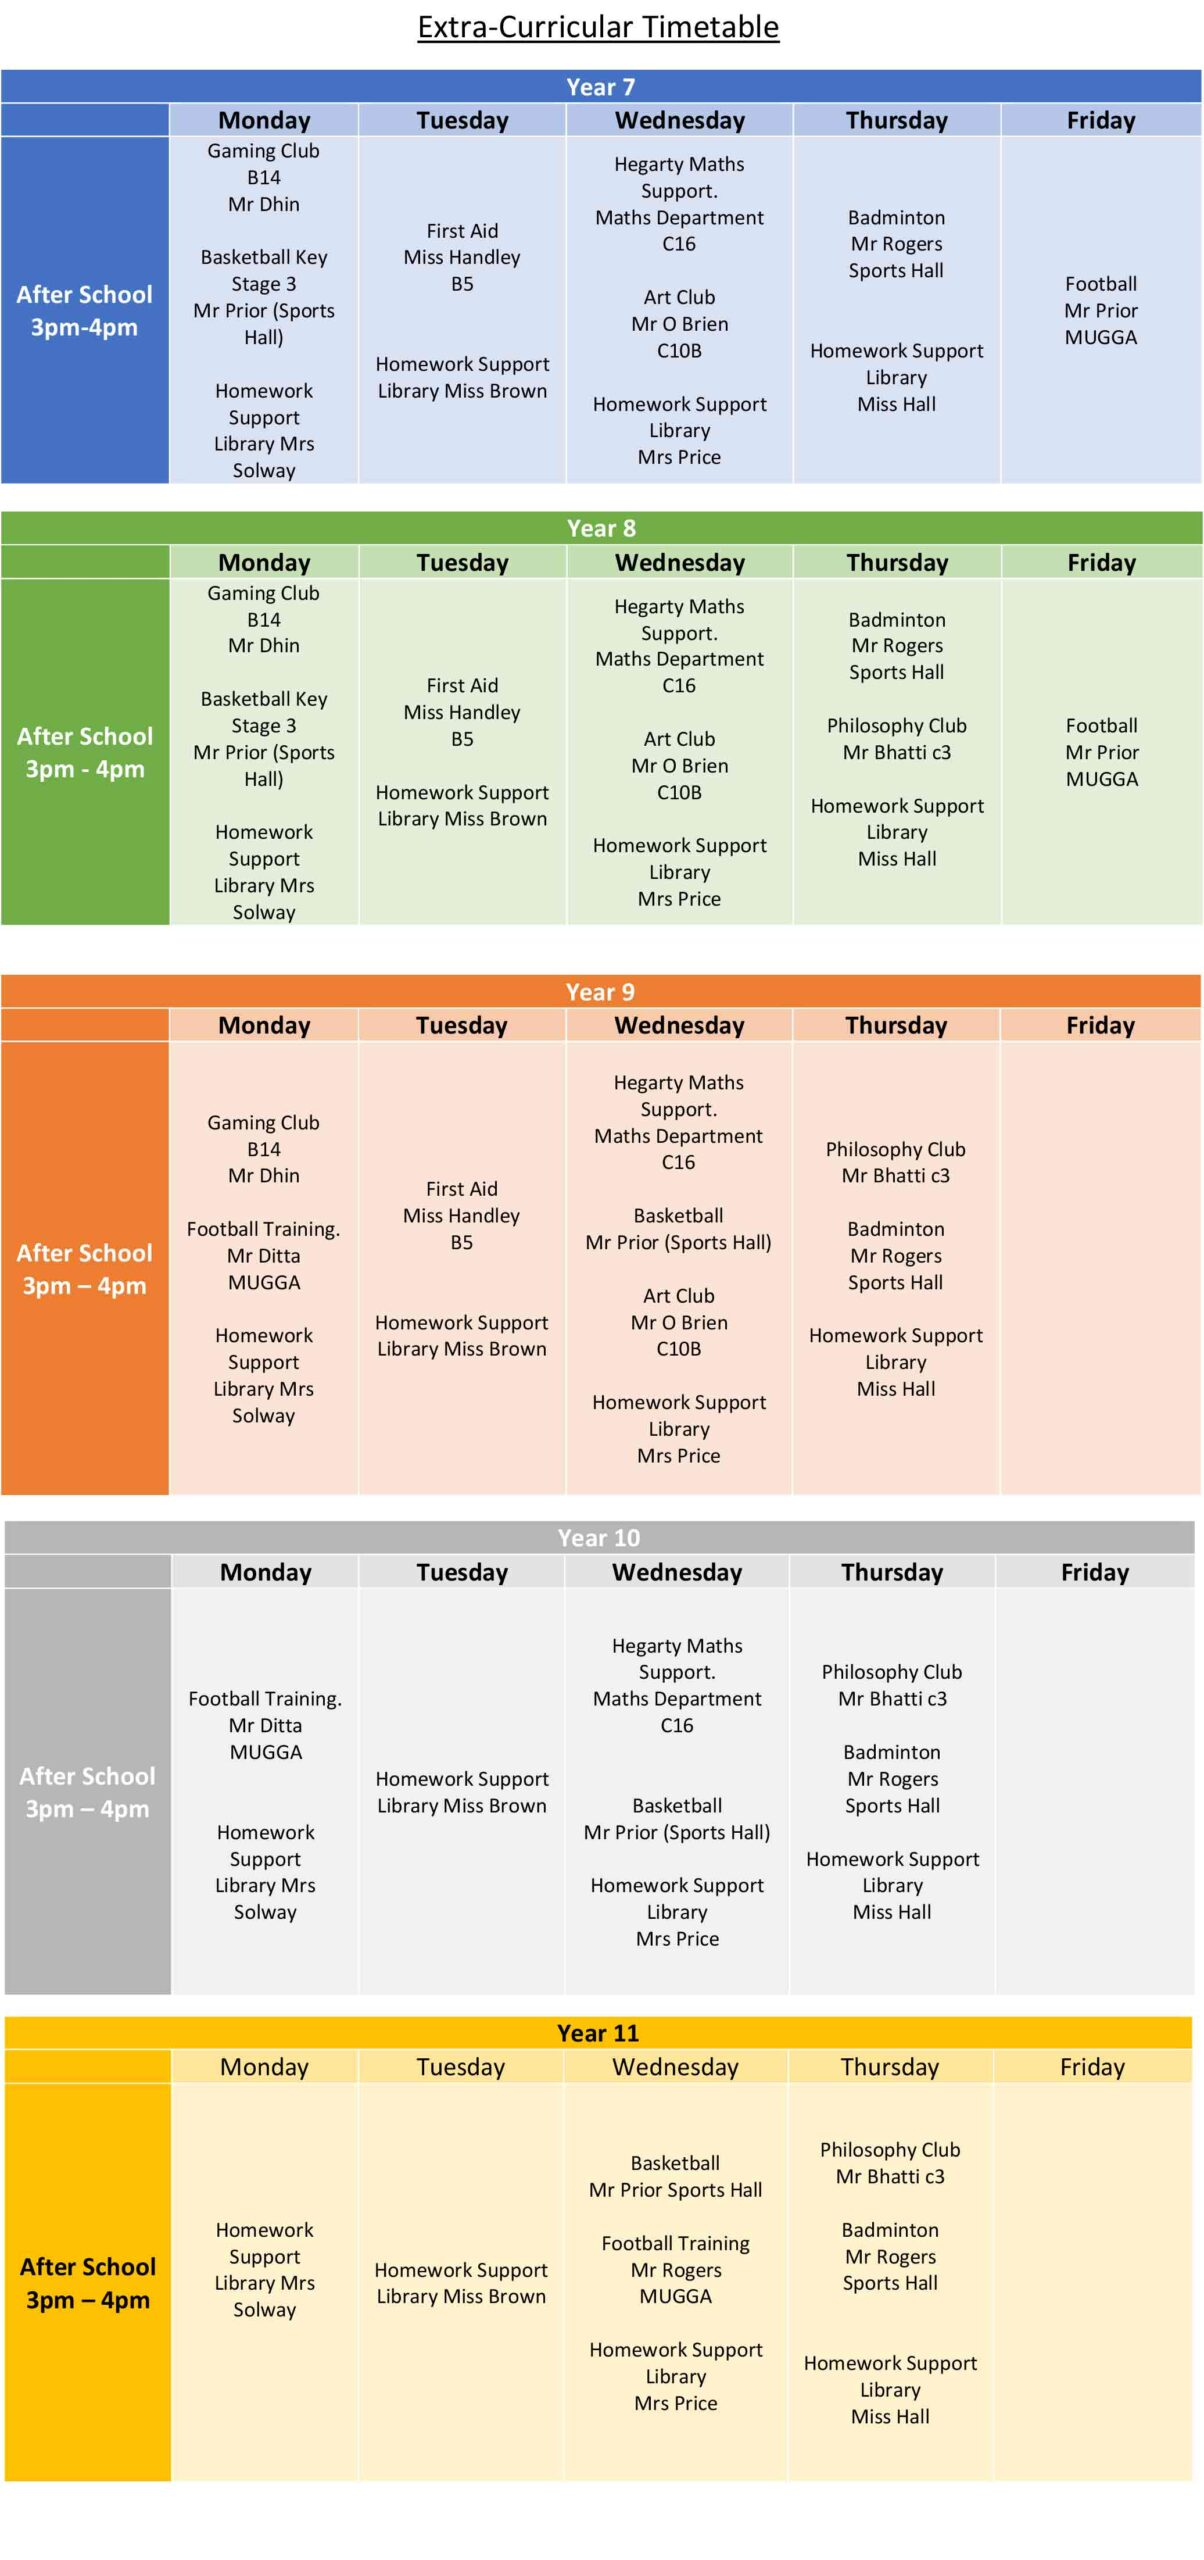 Extra-Curricular-Timetable-Sept-2021-1